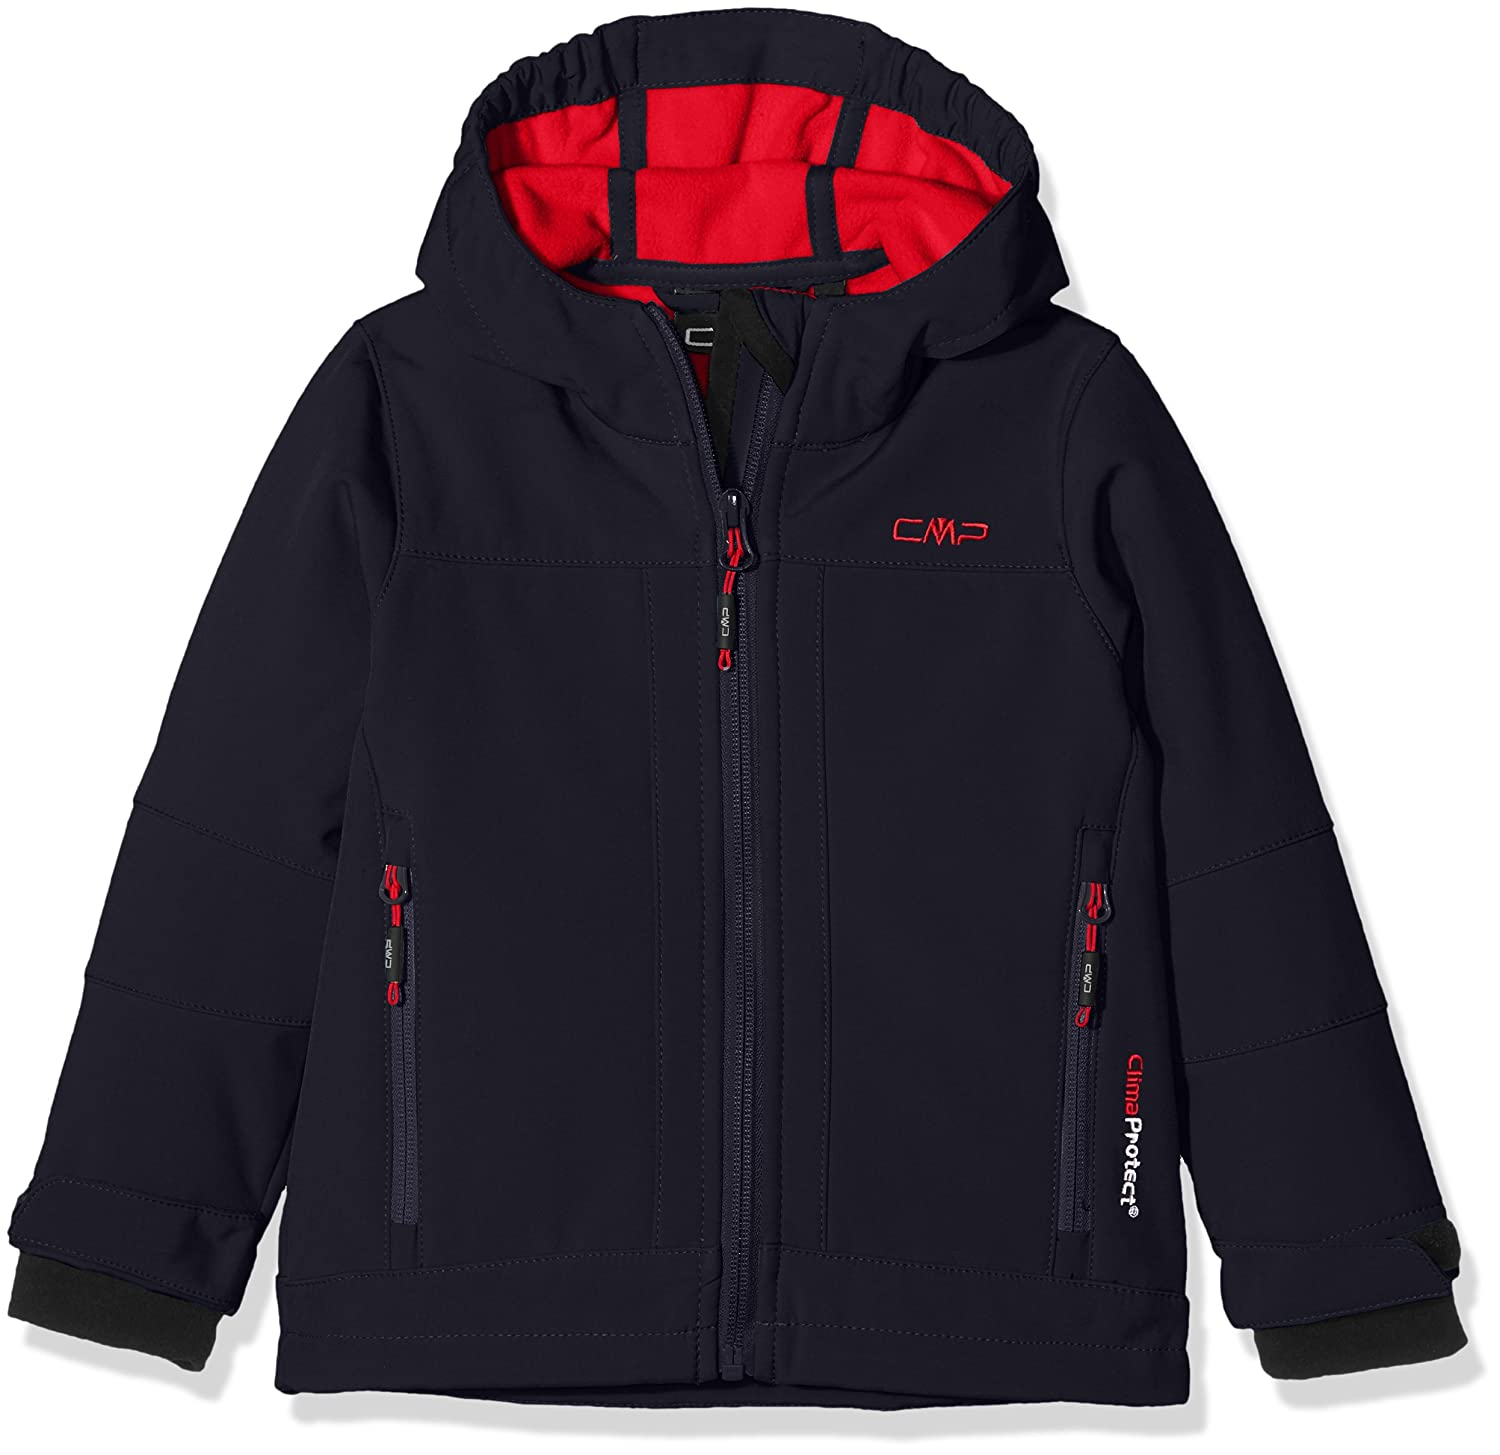 CMP 3 A00094 Boys 'Hooded Jacket CMPA8|#CMP